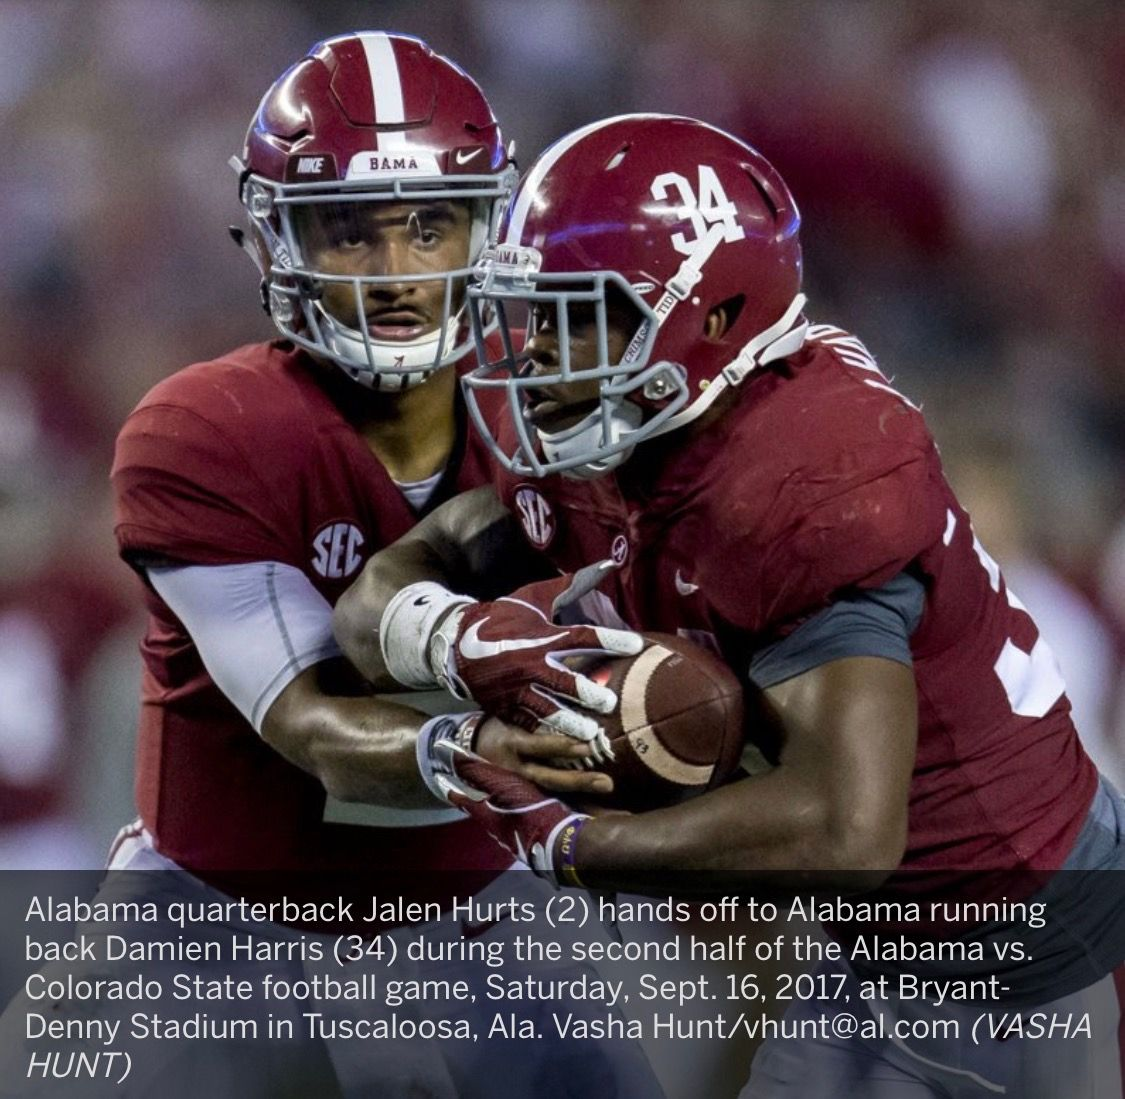 Alabama Quarterback Jalen Hurts 2 Hands Off To Alabama Running Back Damien Harris 34 During The Second Half Of The Alab Alabama Vs Alabama Alabama Football